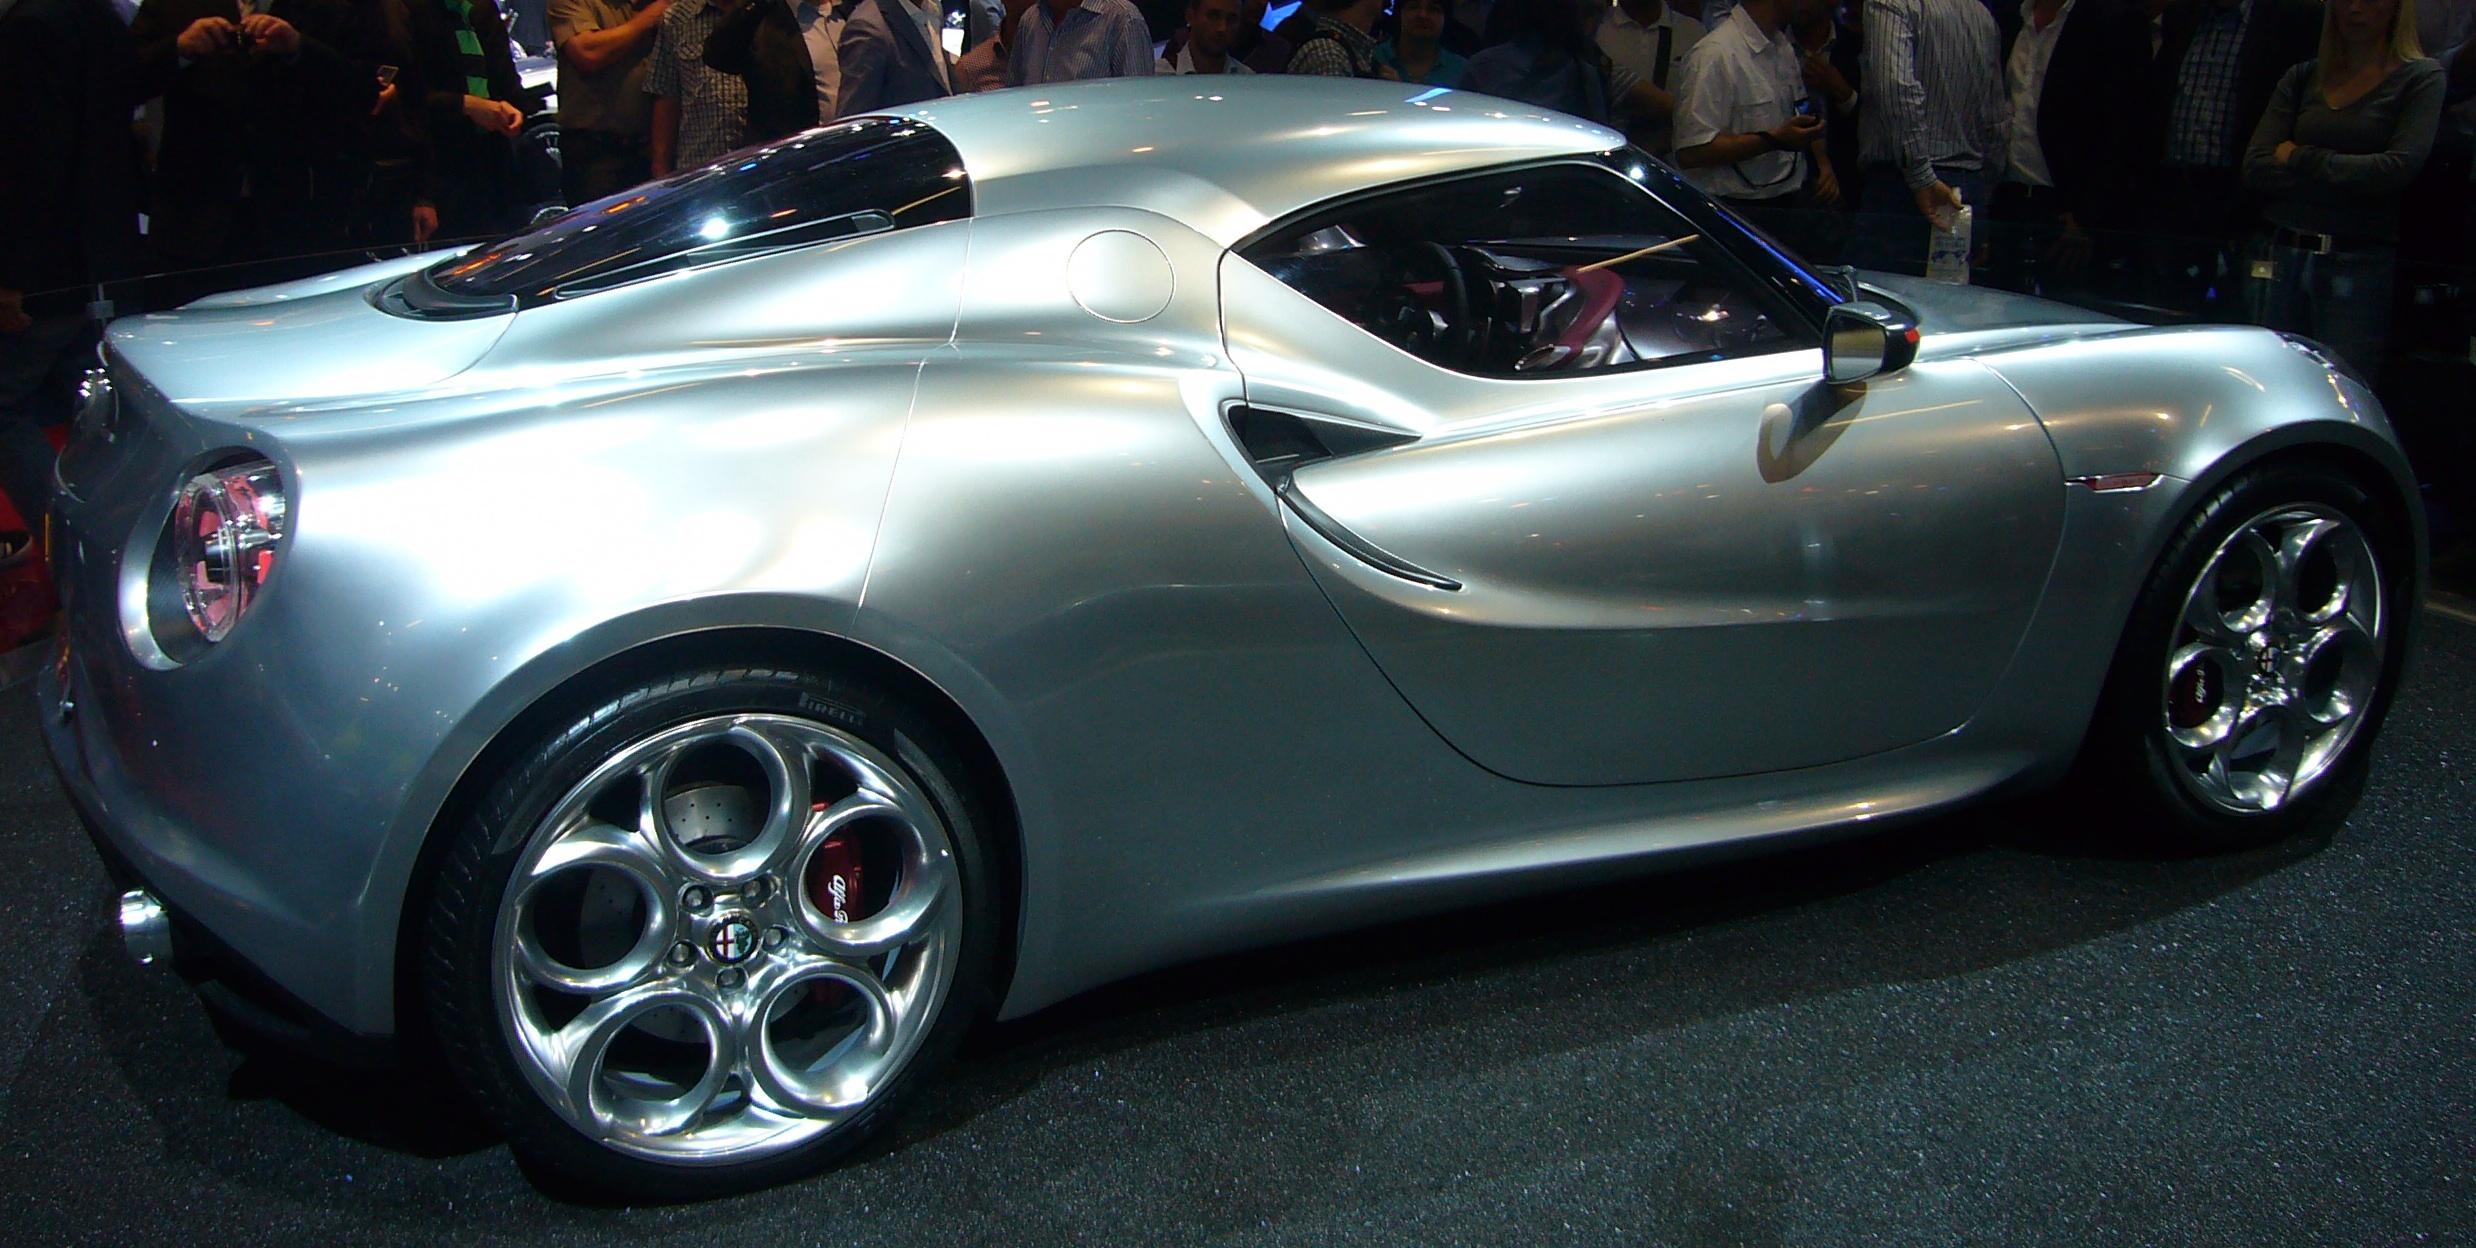 Alfa-Romeo 4C photo 12